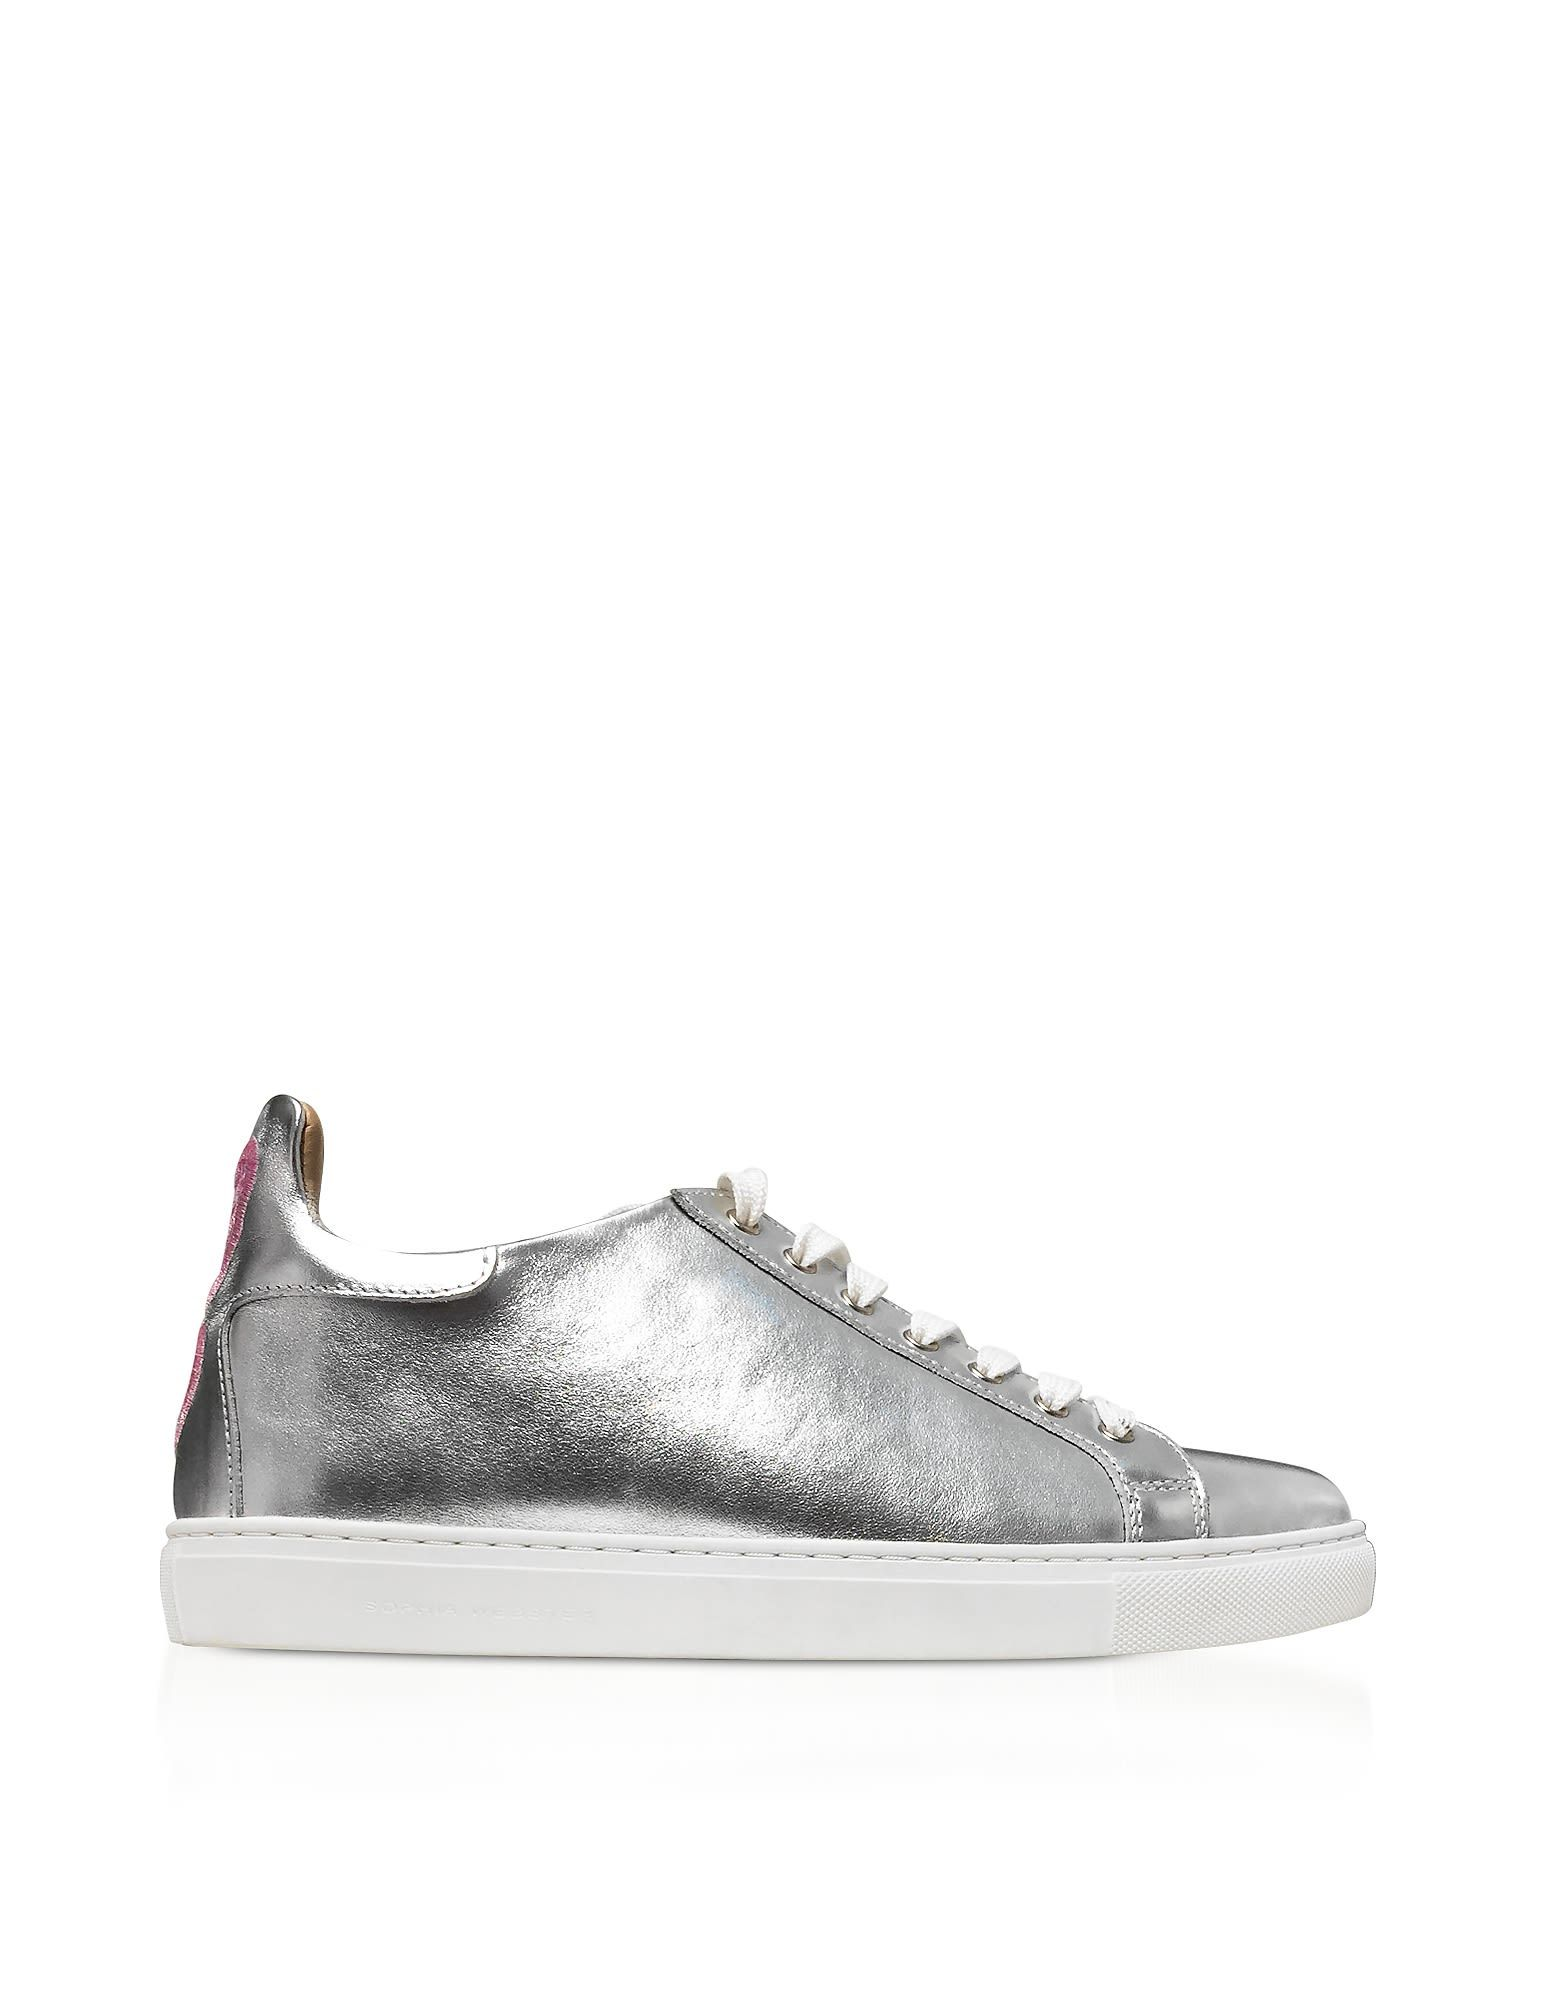 SOPHIA WEBSTER Designer Shoes, & Pastel Metallic Leather Bibi Low Top Sneaker